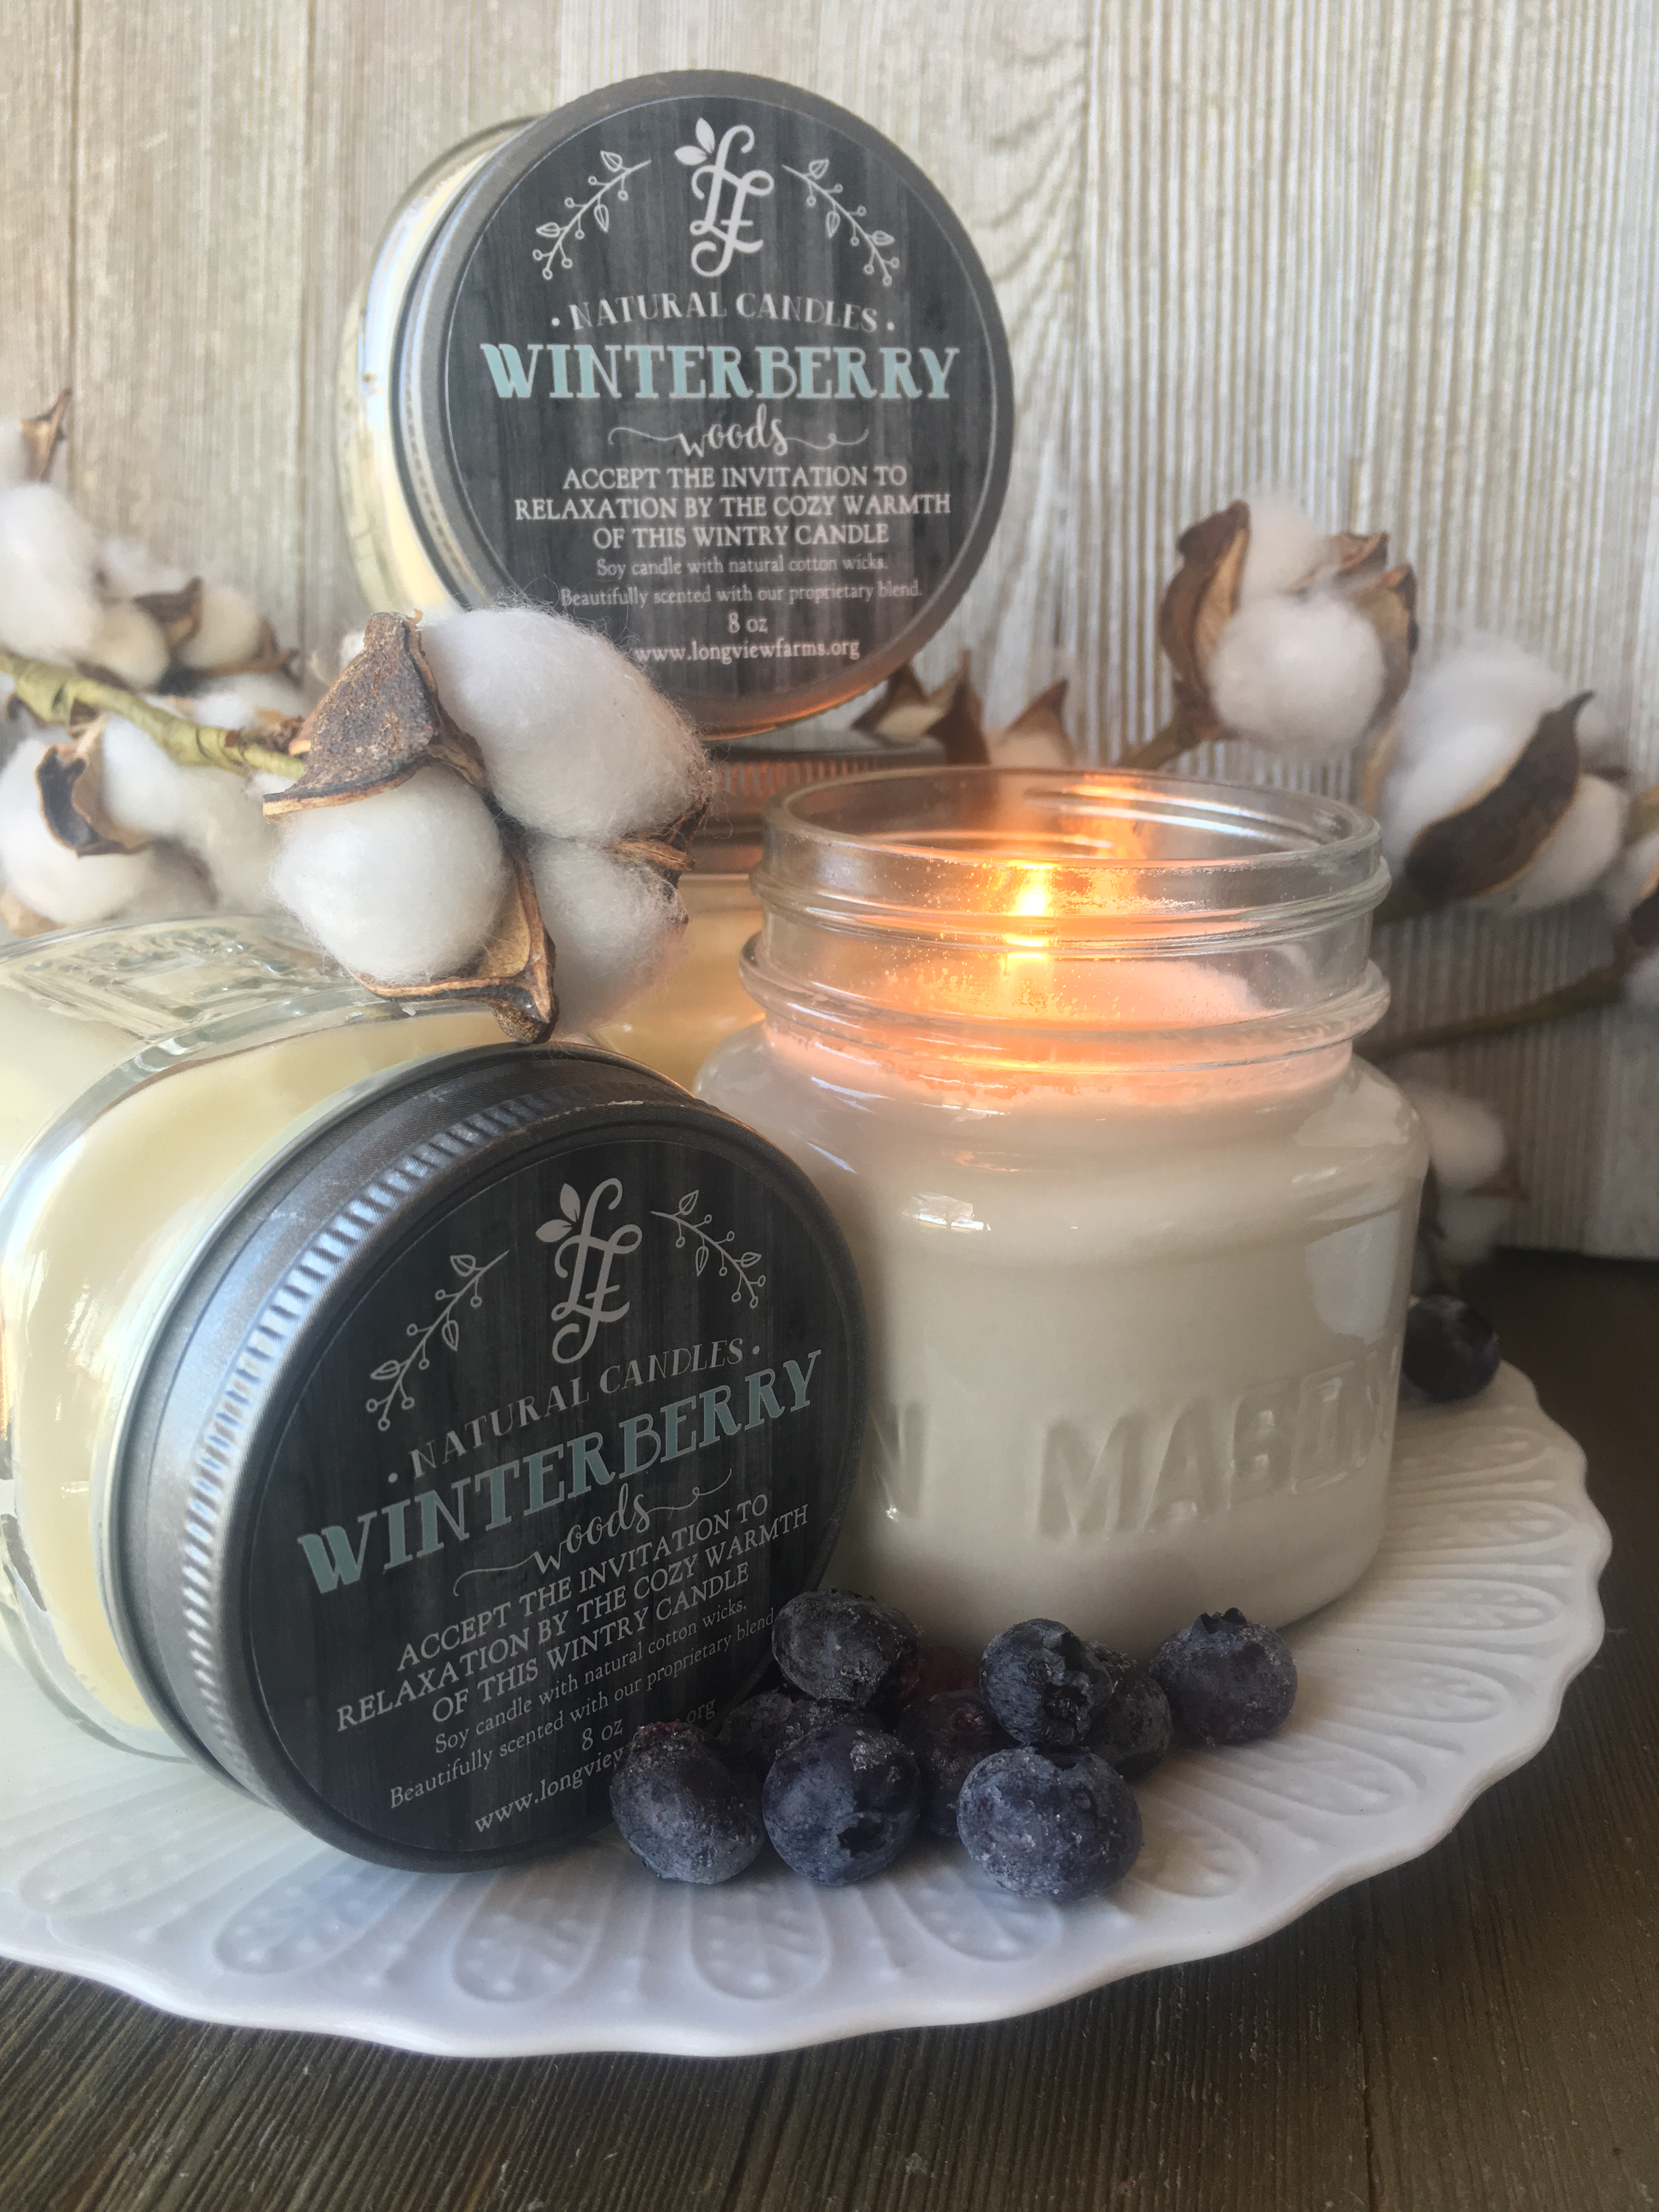 We Re Pretty Excited About Our New Soy Candle Winterberry Woods It S Loaded With Juicy Berries Blended Siberian Fir And Sprinkled E